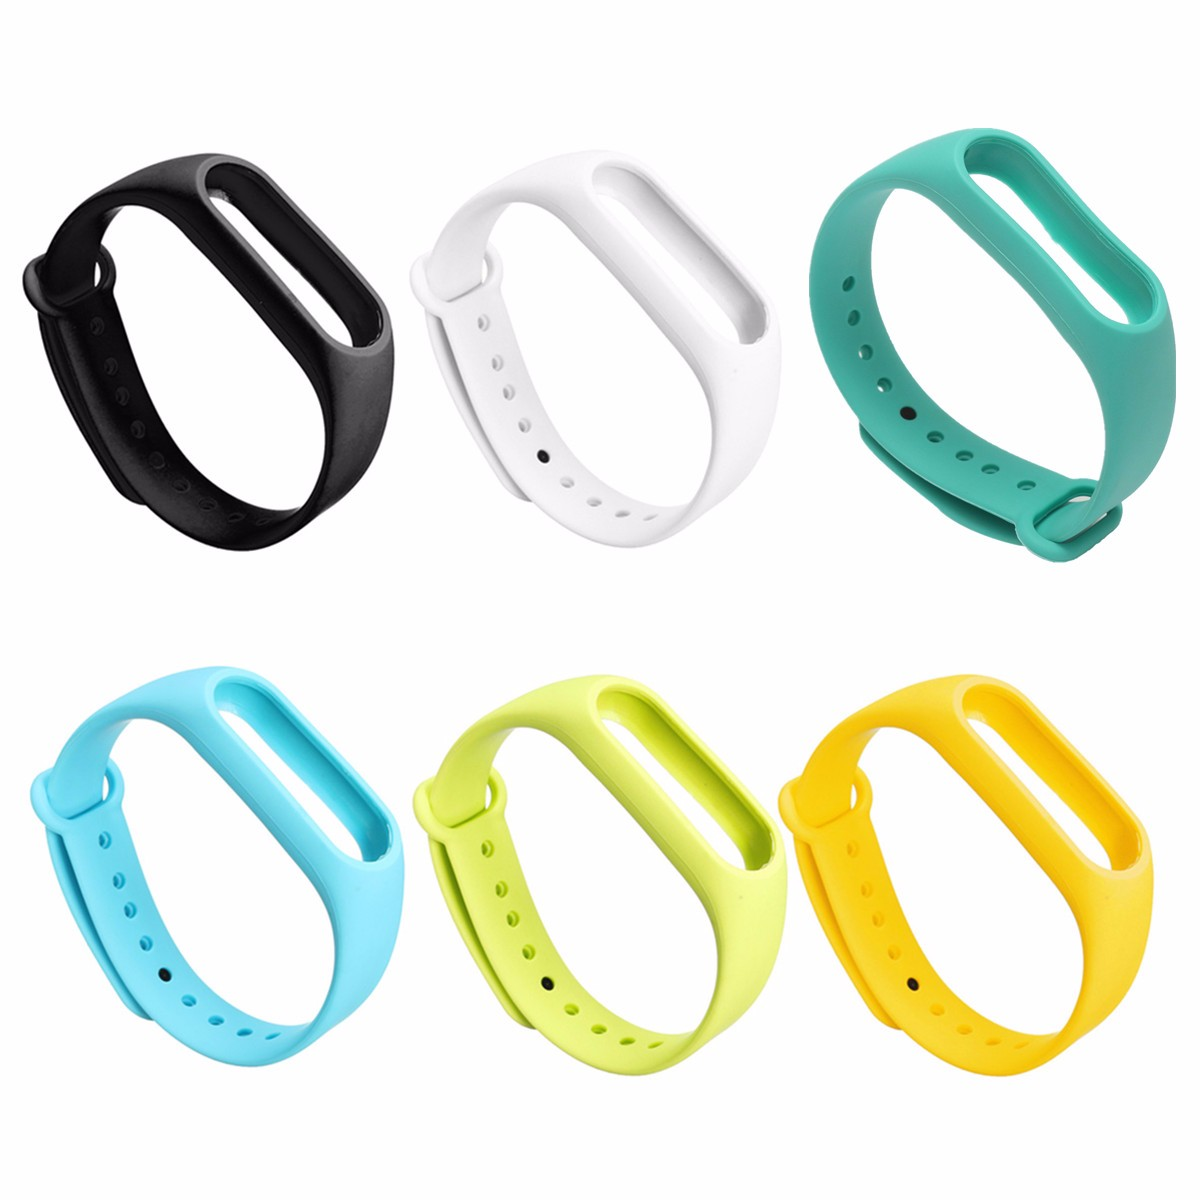 все цены на Hot Silicone Belt Wristband Watchband Wearable Strap Replacement Colorful Bracelet For/Xiaomi/Miband 2 Smart Accessories онлайн